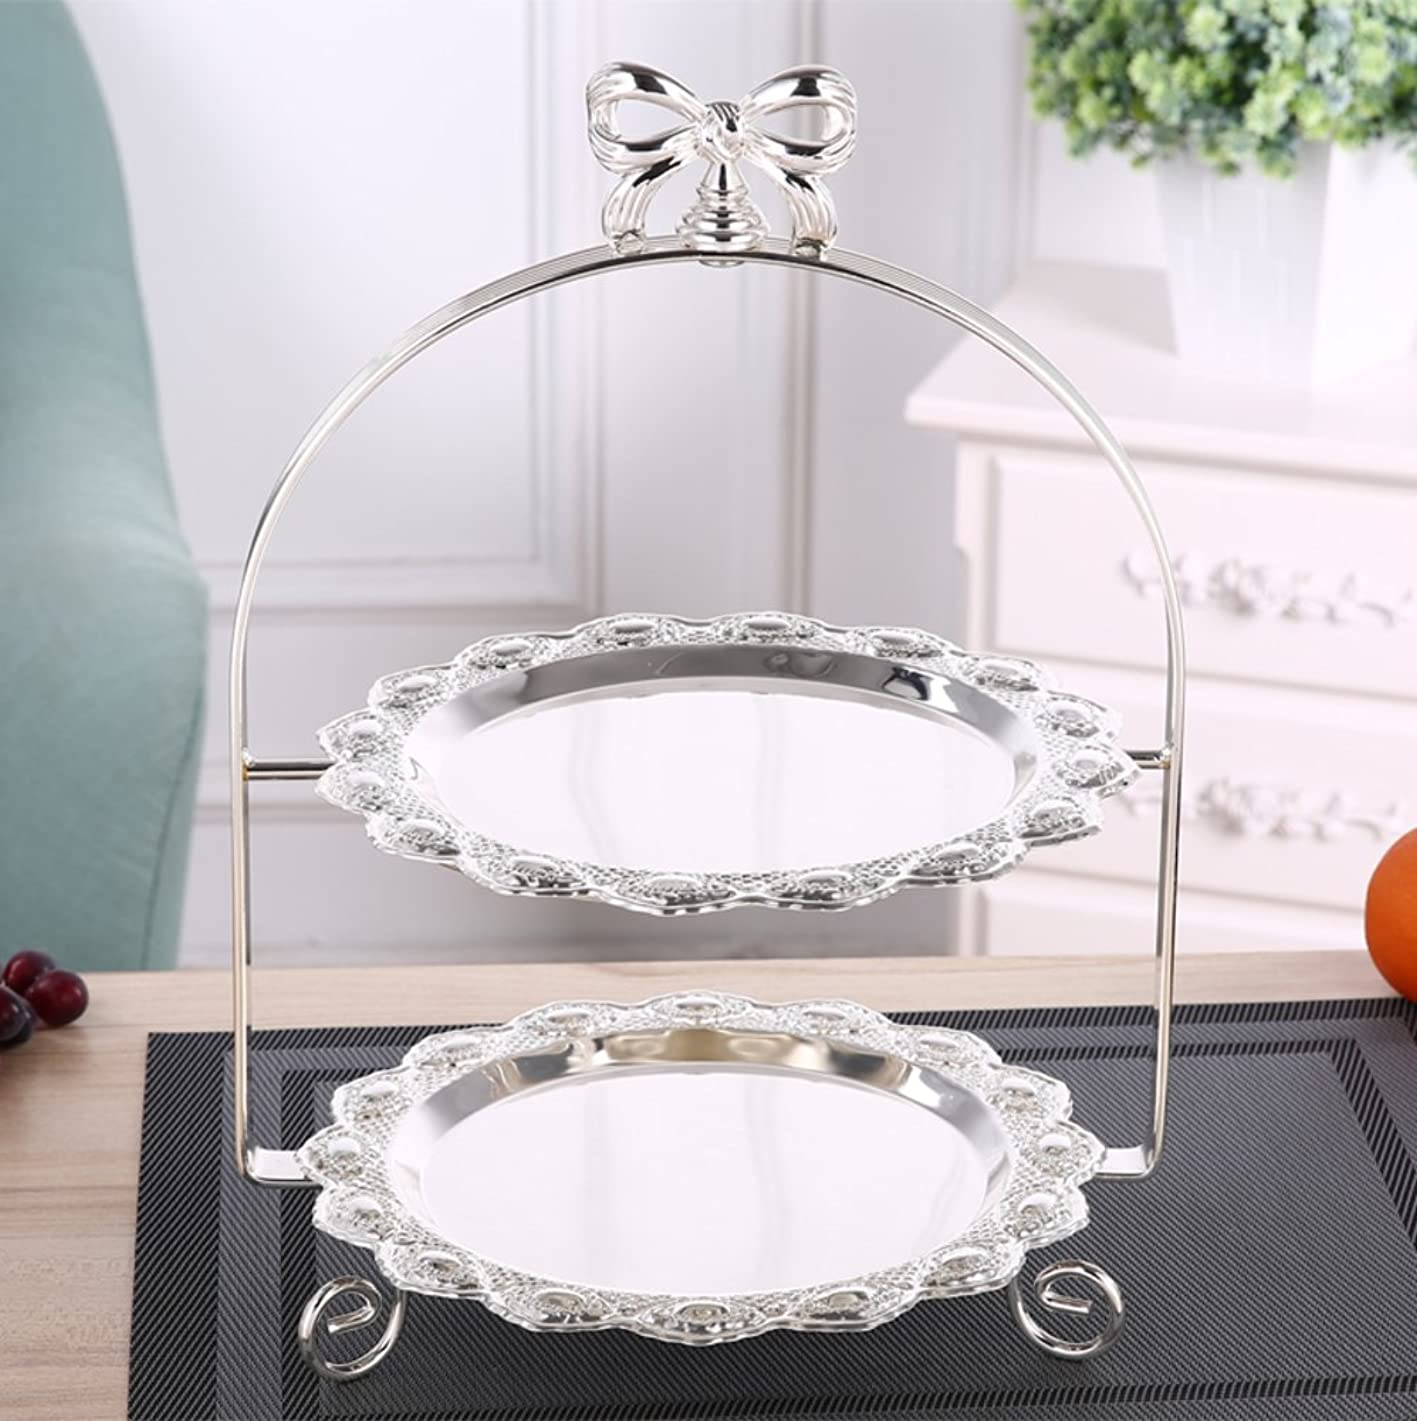 Cake stand cupcake tray dessert display european creative silver plating for wedding birthday party restaurant two-layers-D